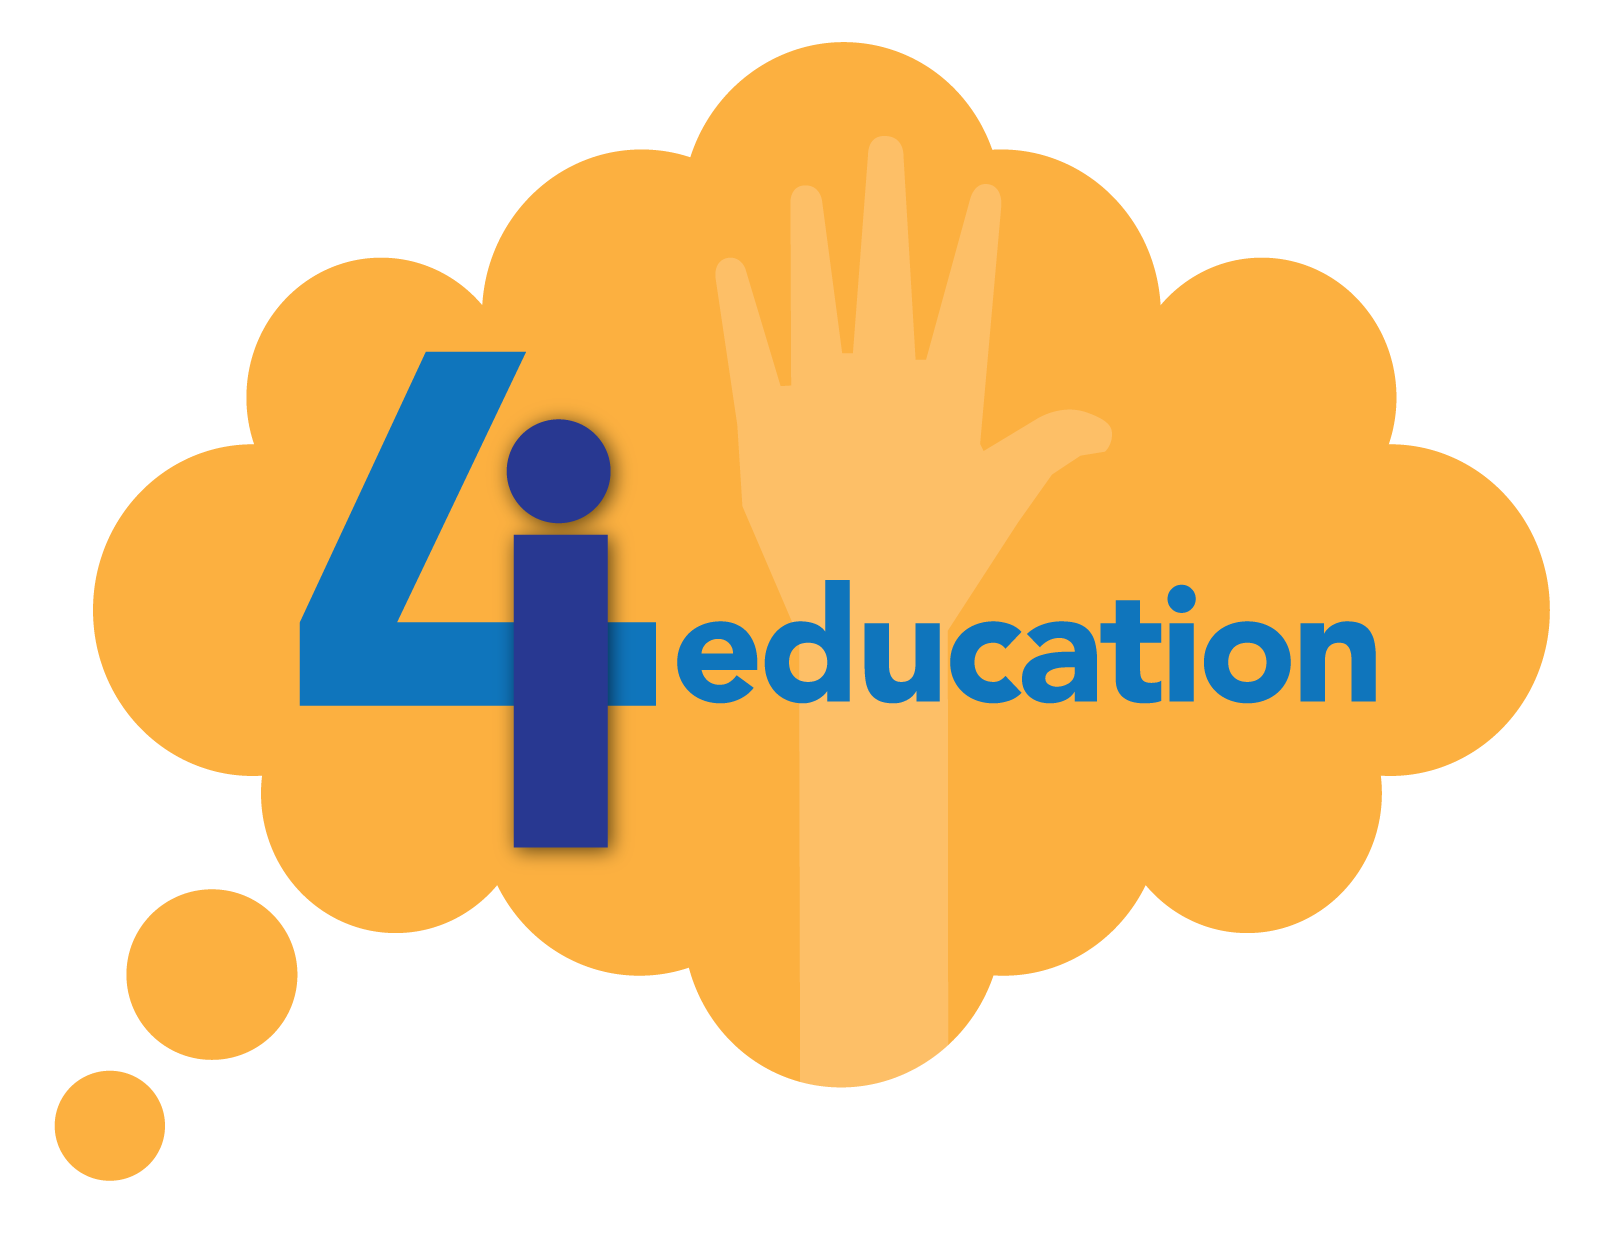 i4 education logo